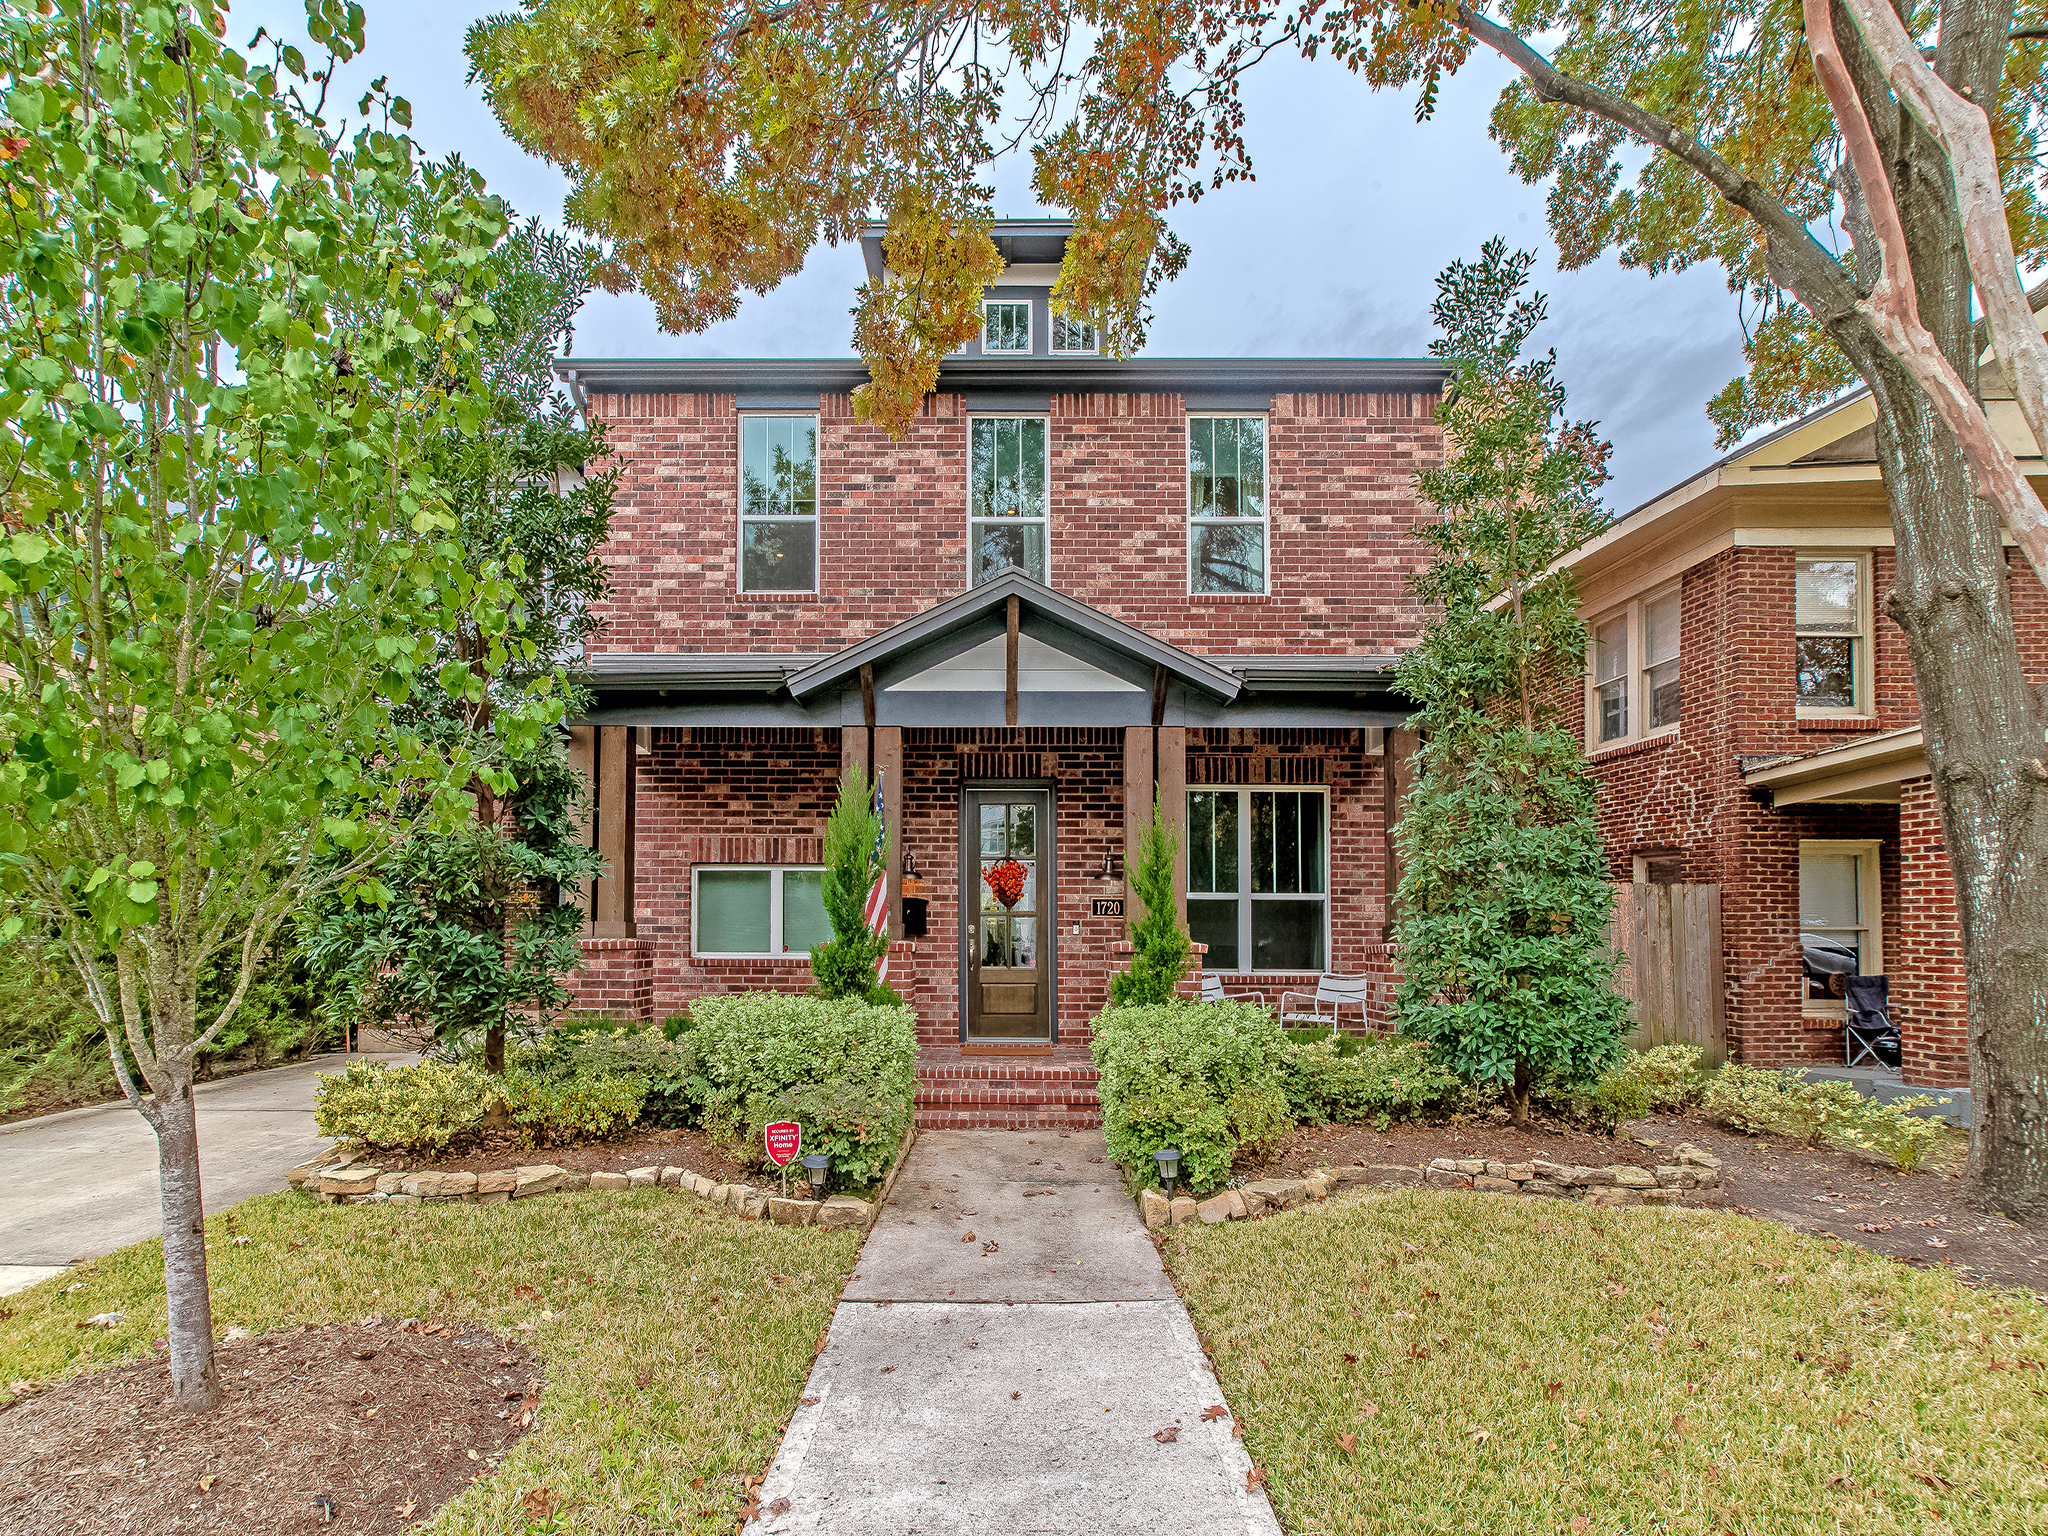 A beautiful craftsman style home built in 2016. Ideally located within walking distance of the Montrose HEB, Trader Joes, Menil Collection and many other Upper Kirby Shops and Eateries.